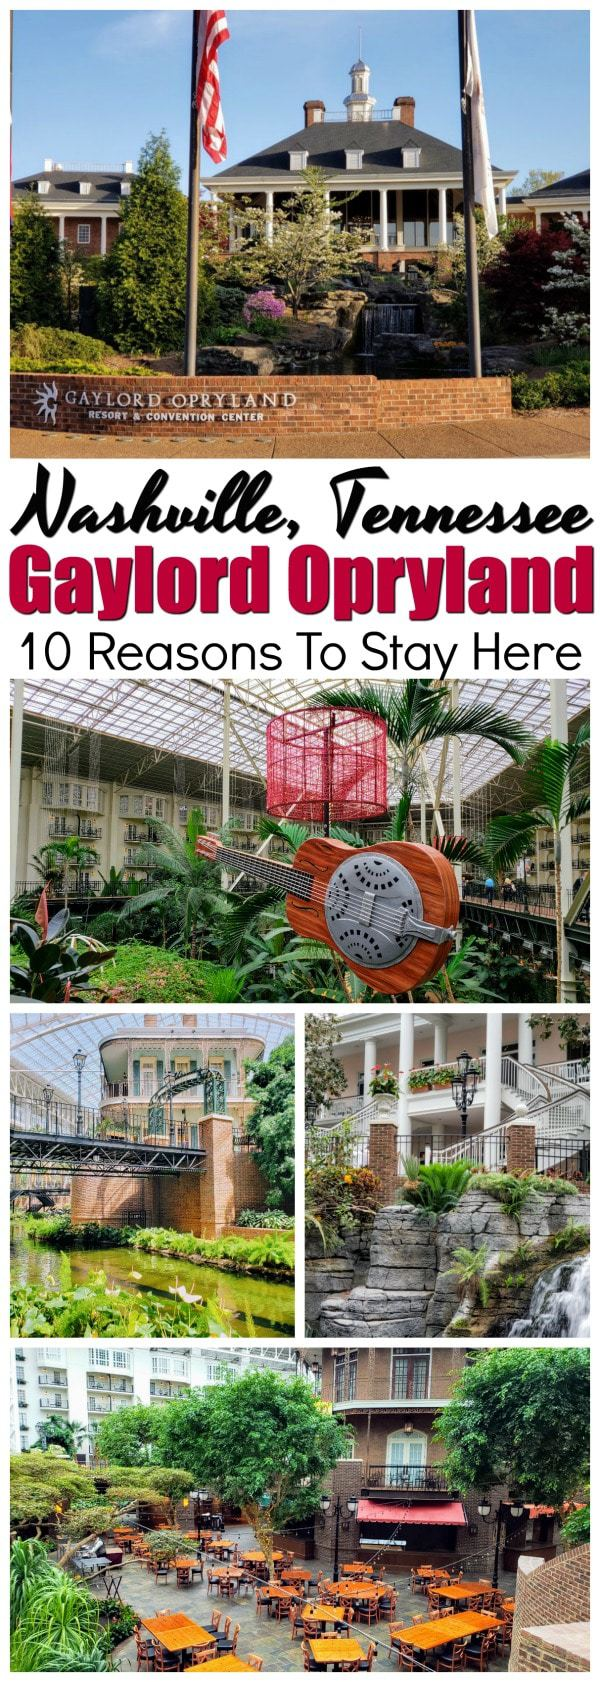 Words can't even accurately describe the beautiful gardens, the beautiful lobby, theriver, and the sunlight streaming in through the skylight of the atrium. Gaylord Opryland Hotel is serene, peaceful and simply breathtaking. Here are 10 reasons why you will love Gaylord Opryland Hotel in Nashville. #Nashville #GaylordOpryland